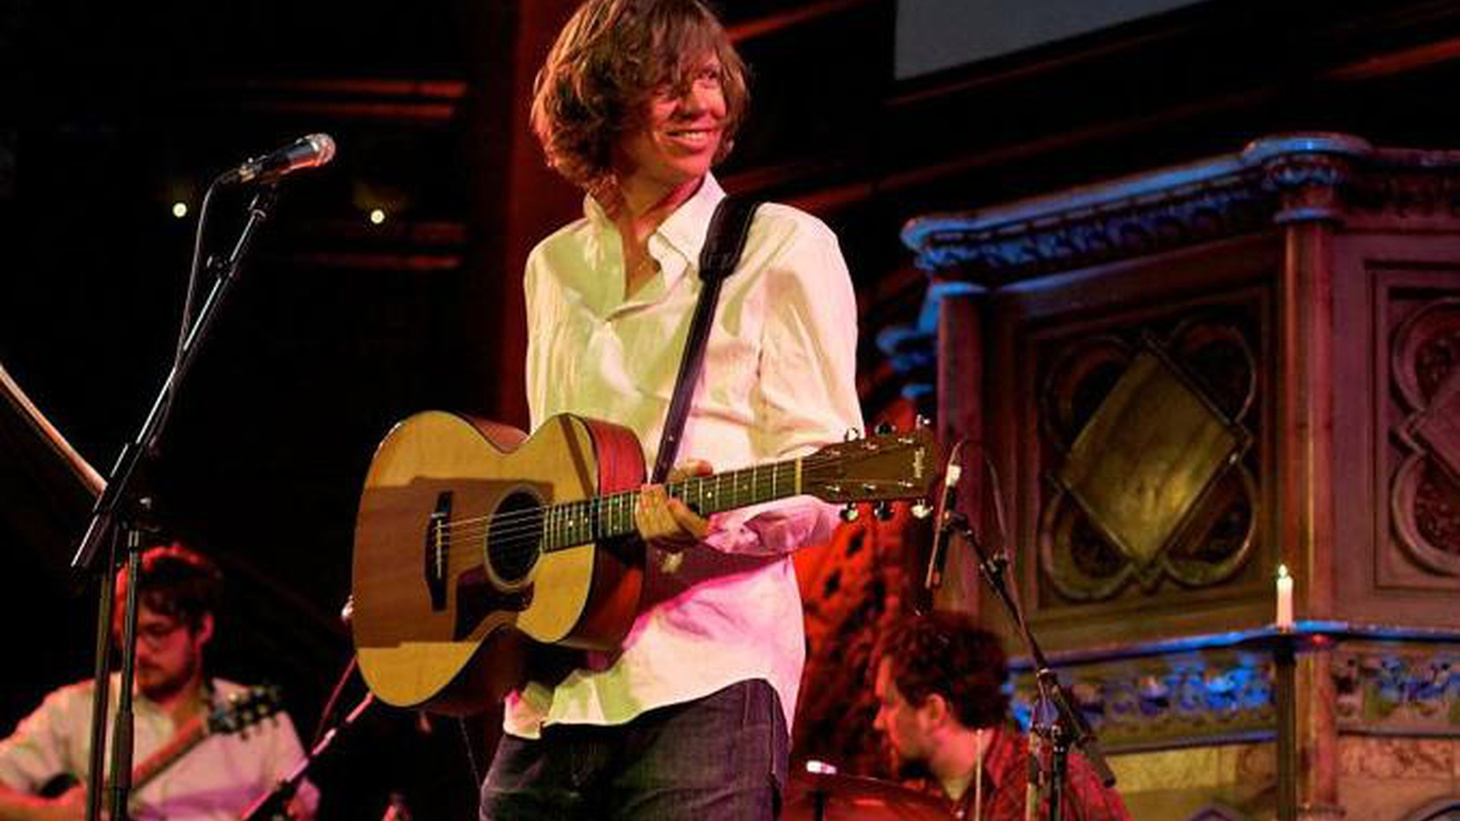 Sonic Youth front-man Thurston Moore released a surprising solo record earlier this year that showed his softer side, with more acoustic arrangements and introspective lyrics....